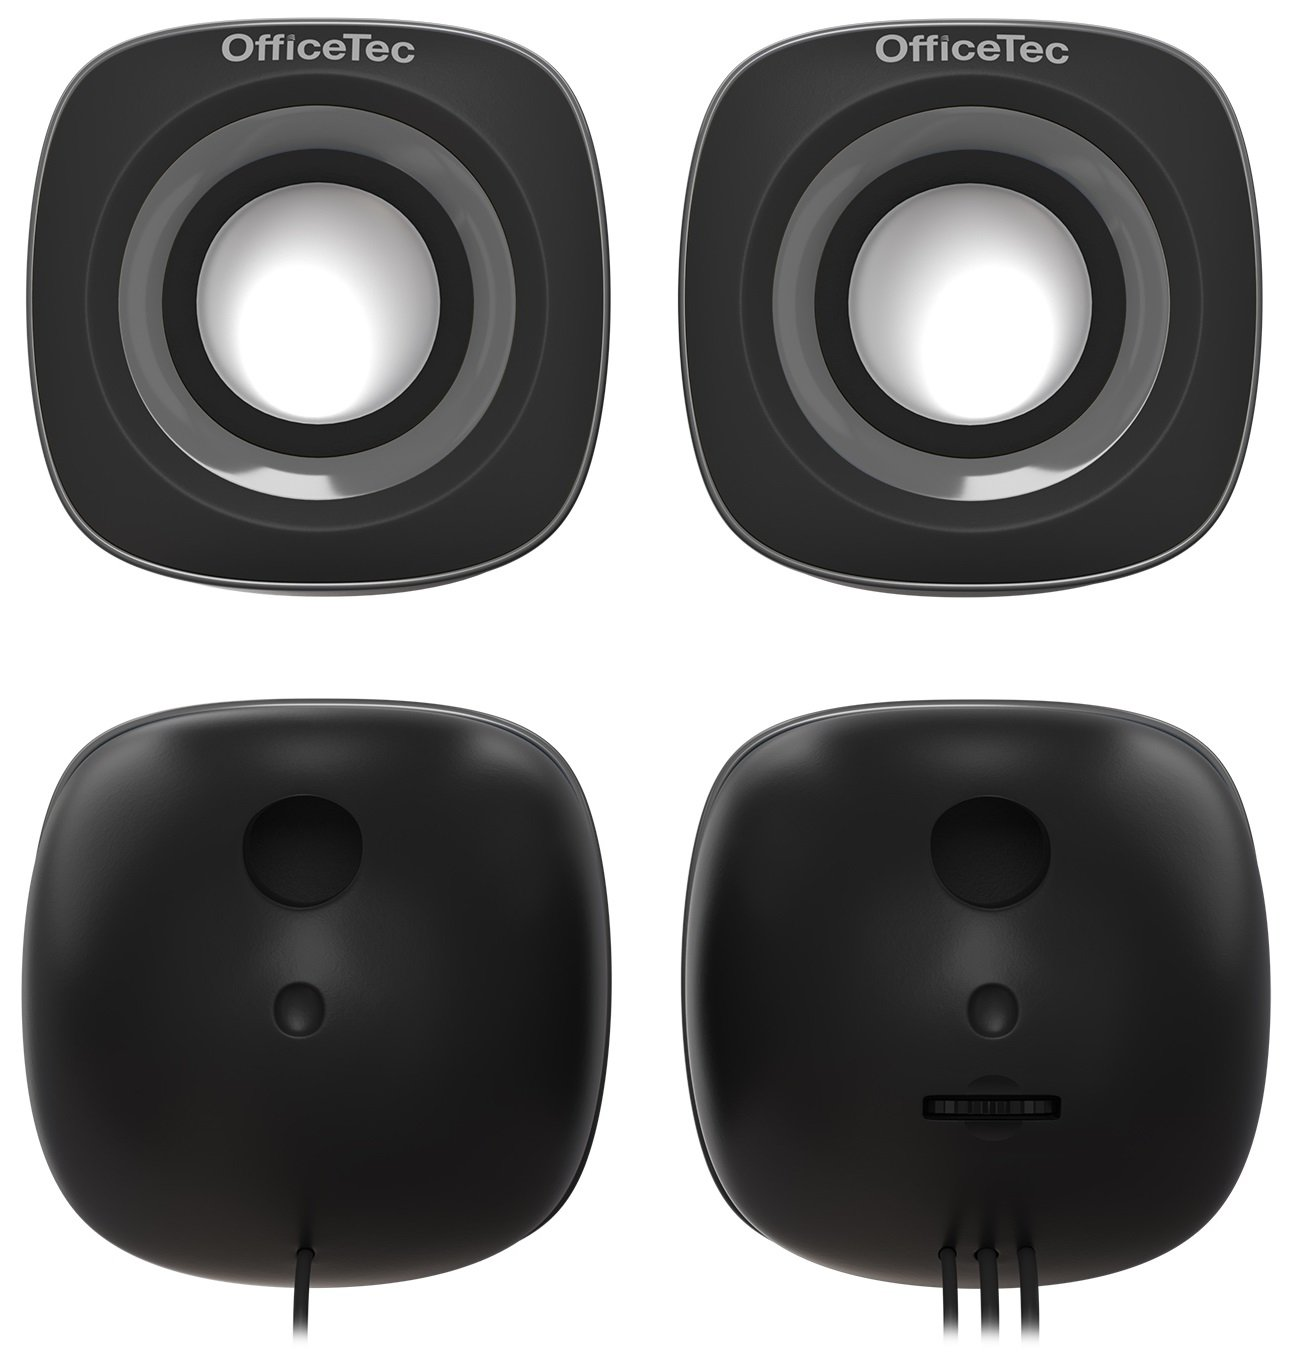 OfficeTec USB Computer Speakers Compact 2.0 System for Mac and PC (Gray) by OfficeTec (Image #4)